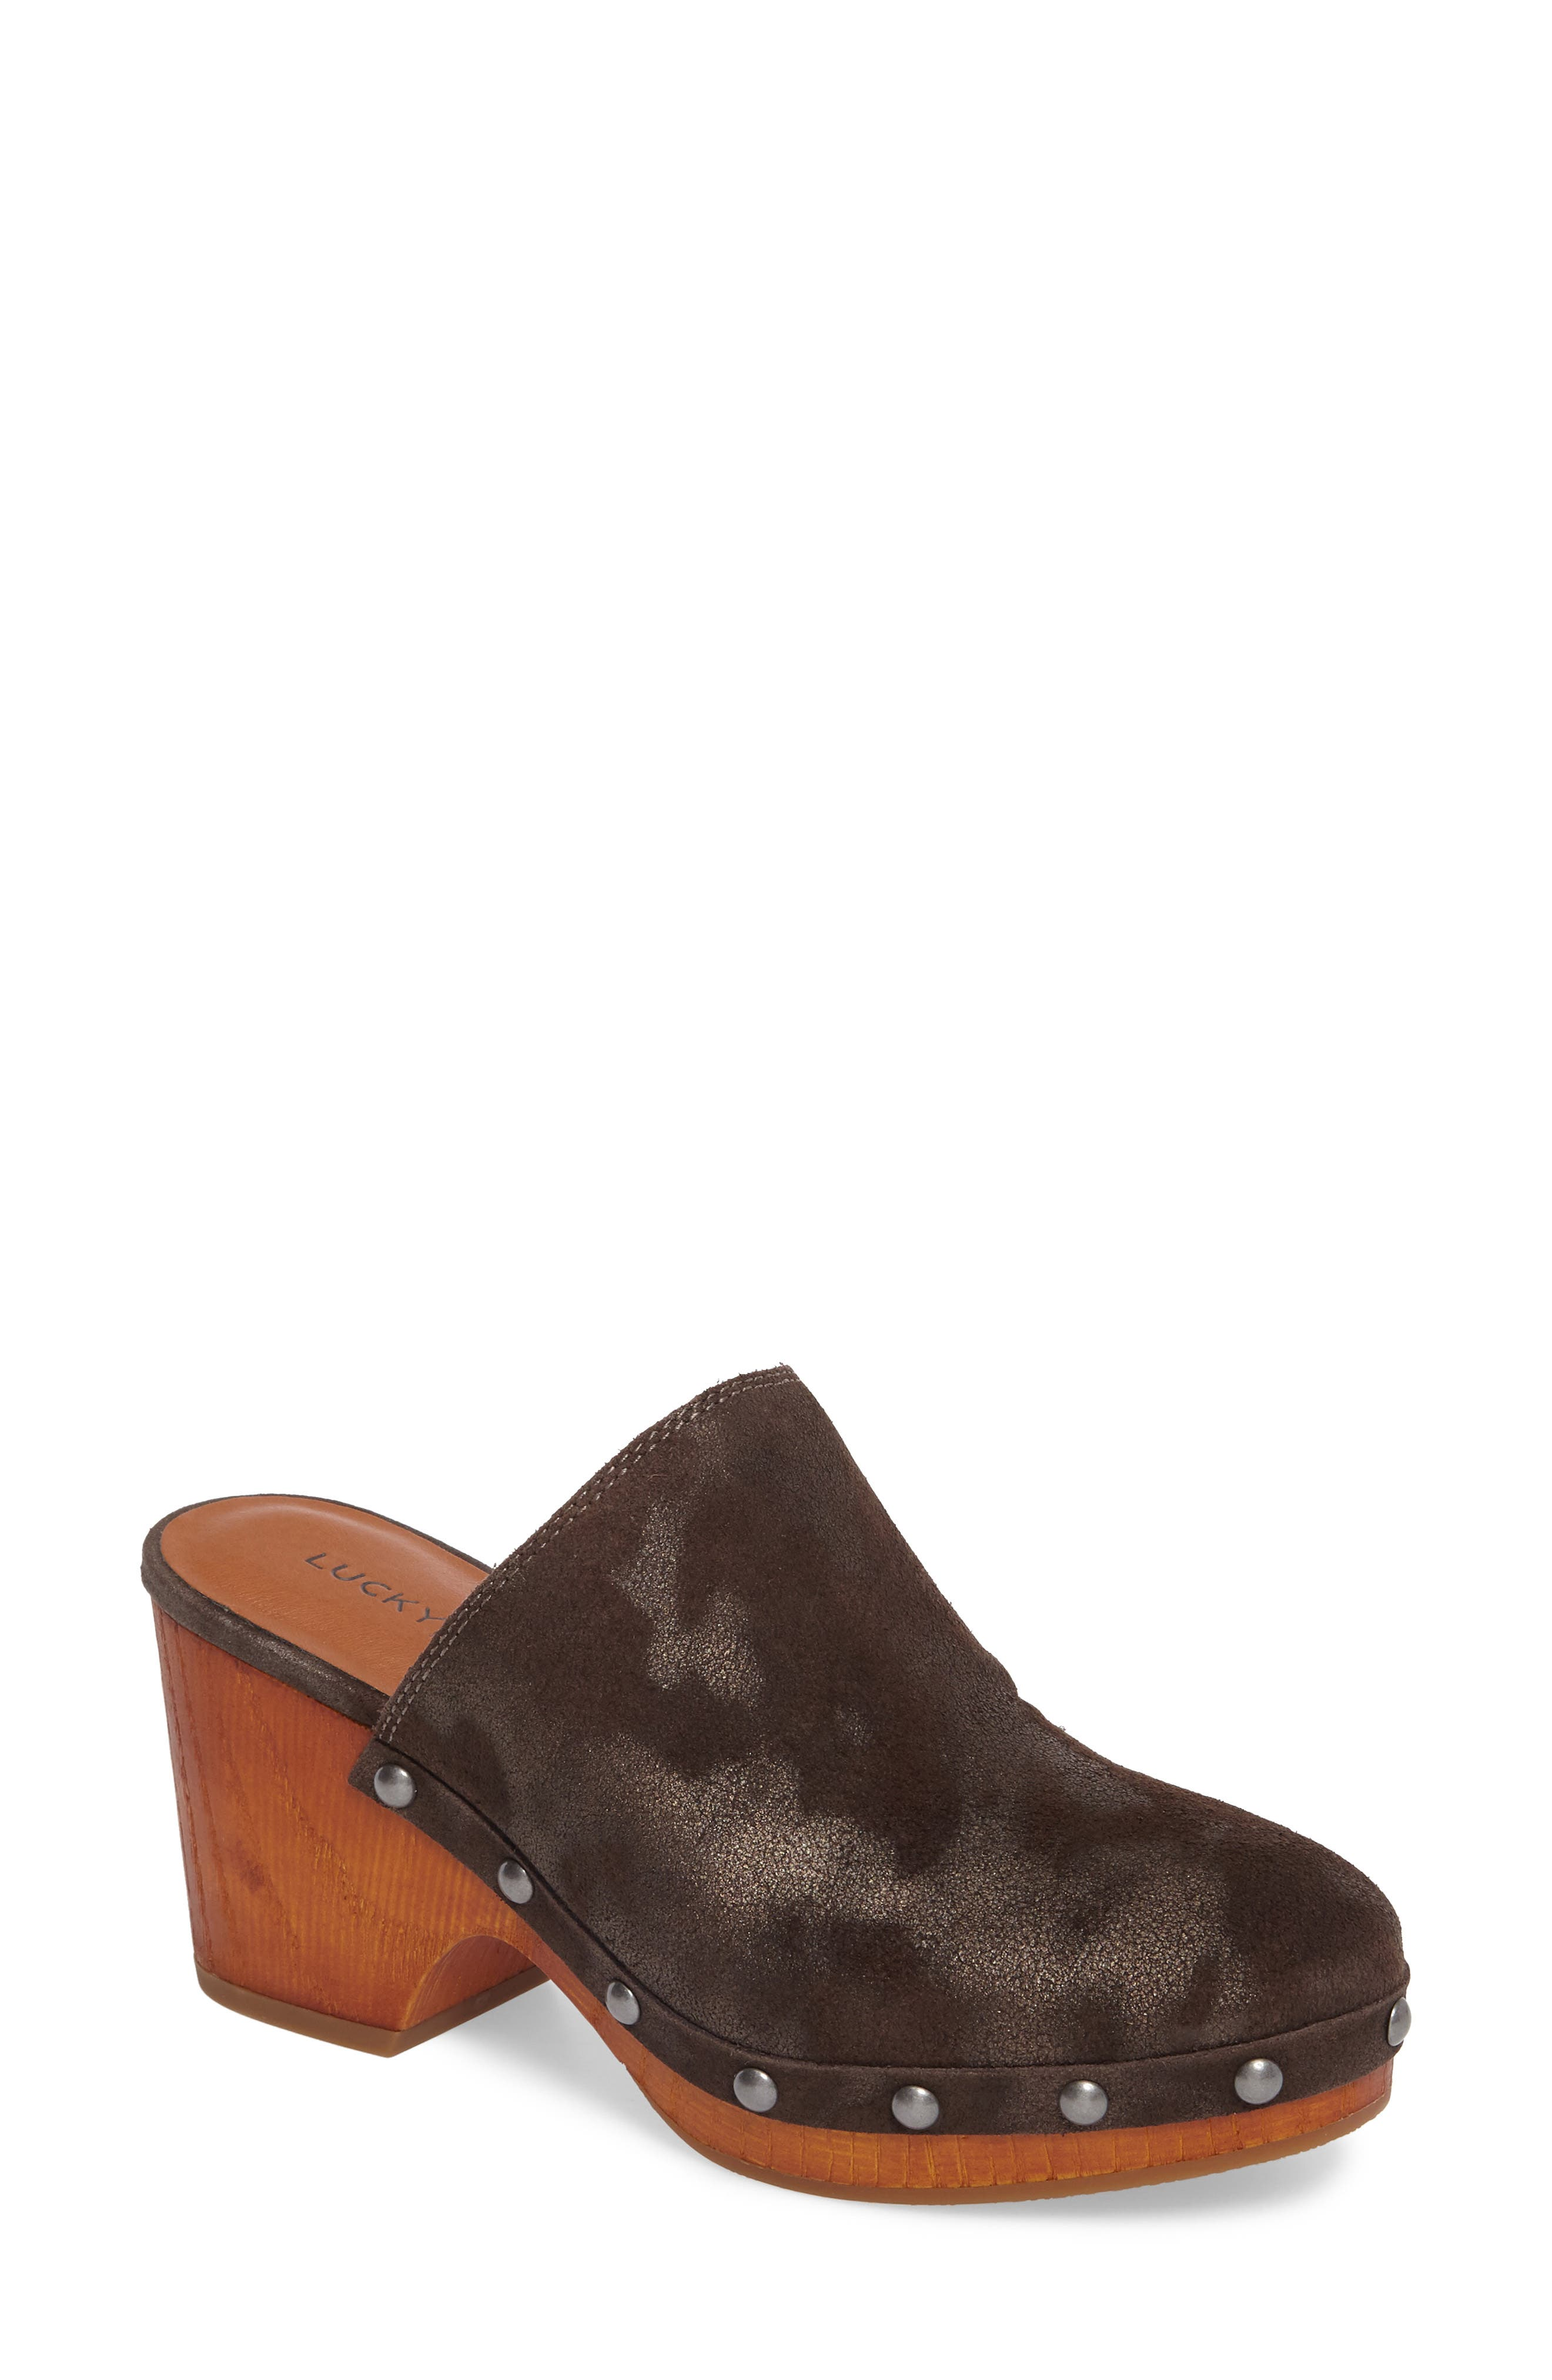 Yeats Clog,                         Main,                         color, Bracken Leather